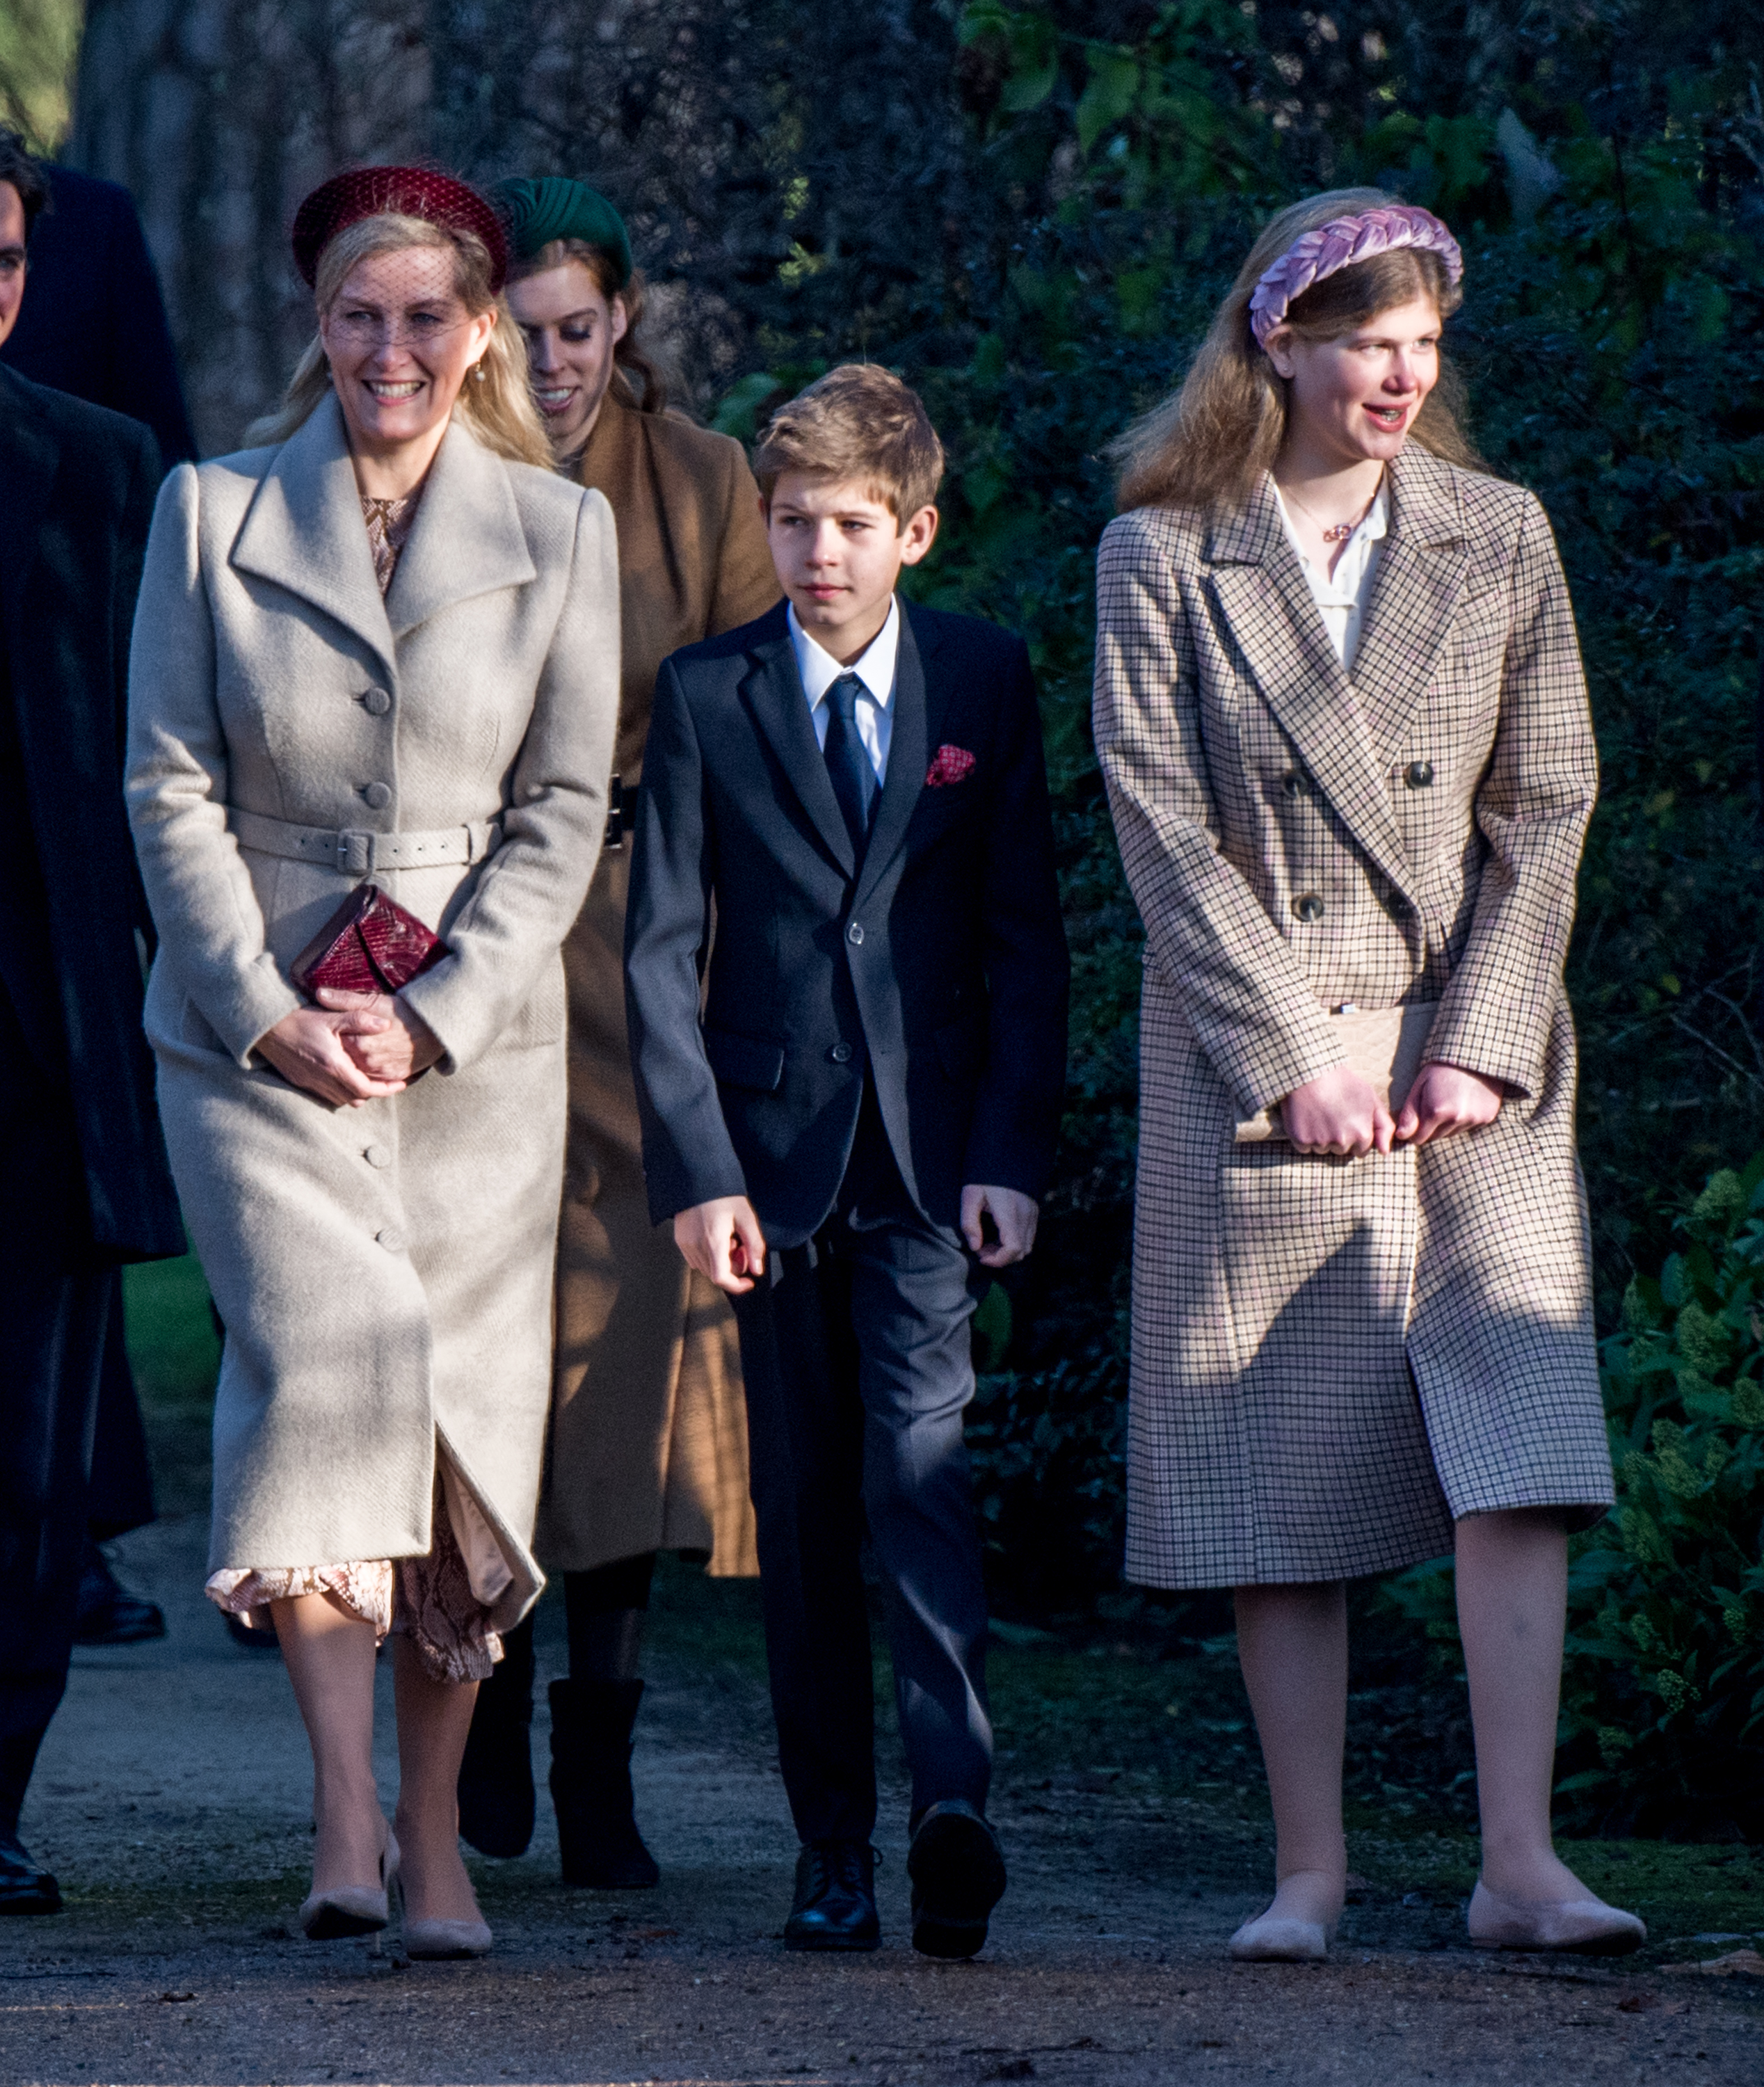 KING'S LYNN, ENGLAND - DECEMBER 25: Sophie, Countess of Wessex with James Viscount Severn and Lady Louise Windsor  attend the Christmas Day Church service at Church of St Mary Magdalene on the Sandringham estate on December 25, 2019 in King's Lynn, United Kingdom. (Photo by Pool/Samir Hussein/WireImage)